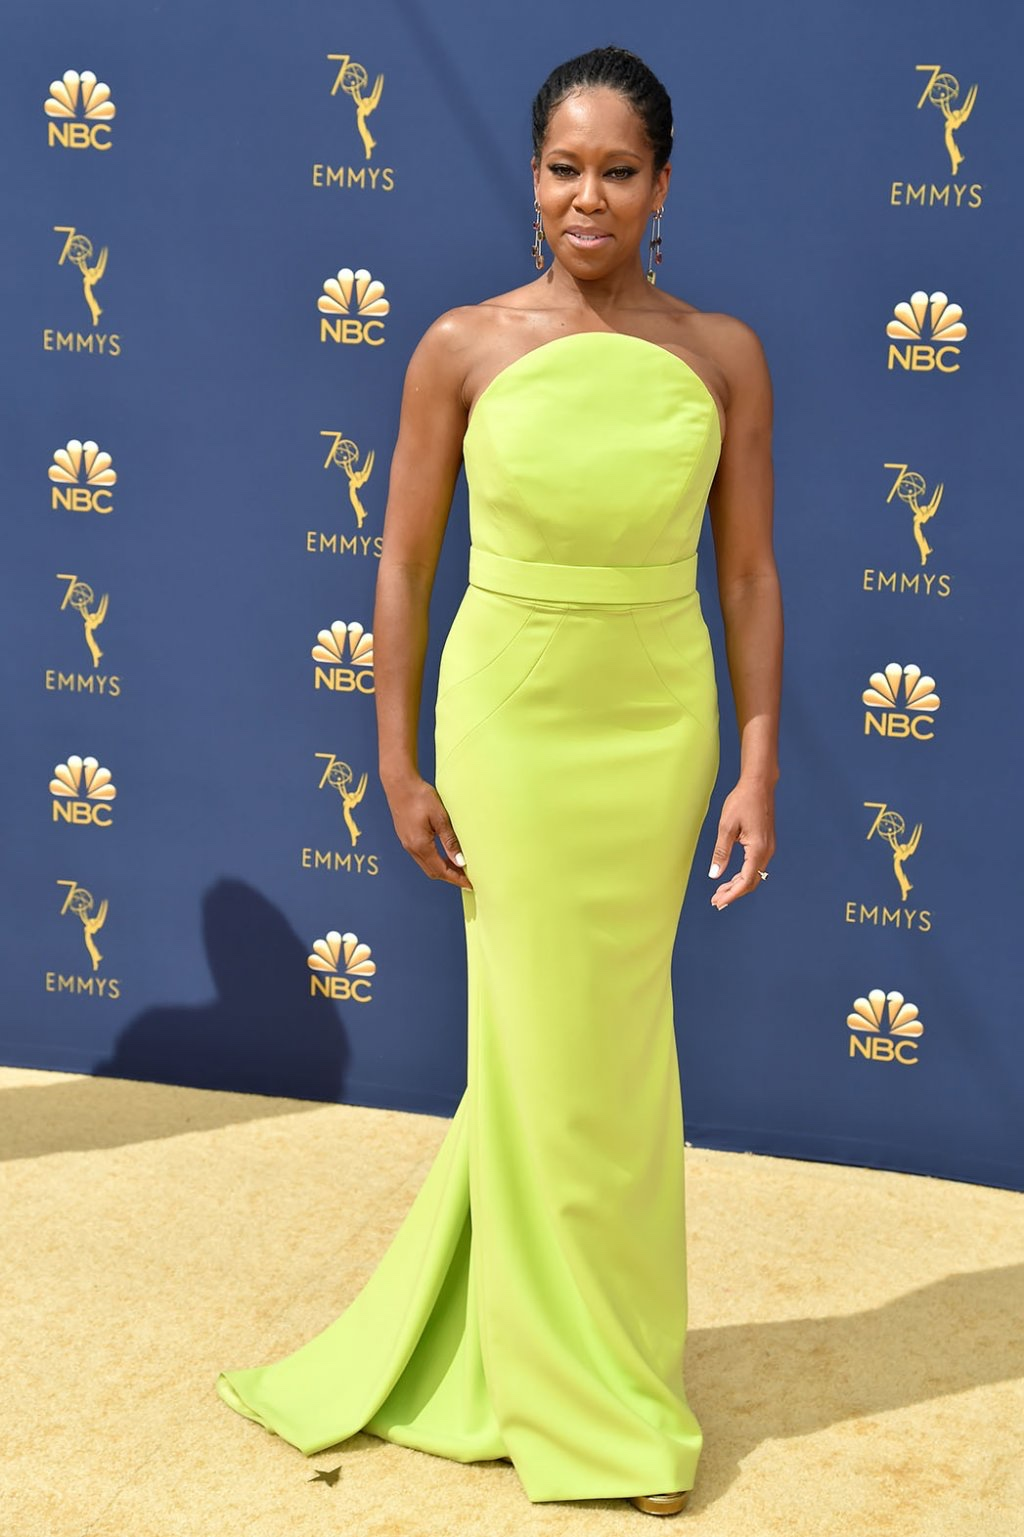 Regina King in Christian Siriano, 70th Annual Primetime Emmy Awards, Betty White, Emmys 2018, Fashion, Featured, Glenn Weiss, Hannah Gadsby, highlights, Jav Svendsen, Online Exclusive, Style, The Marvellous Mrs. Maisel, top moments, We solved it, Diversity